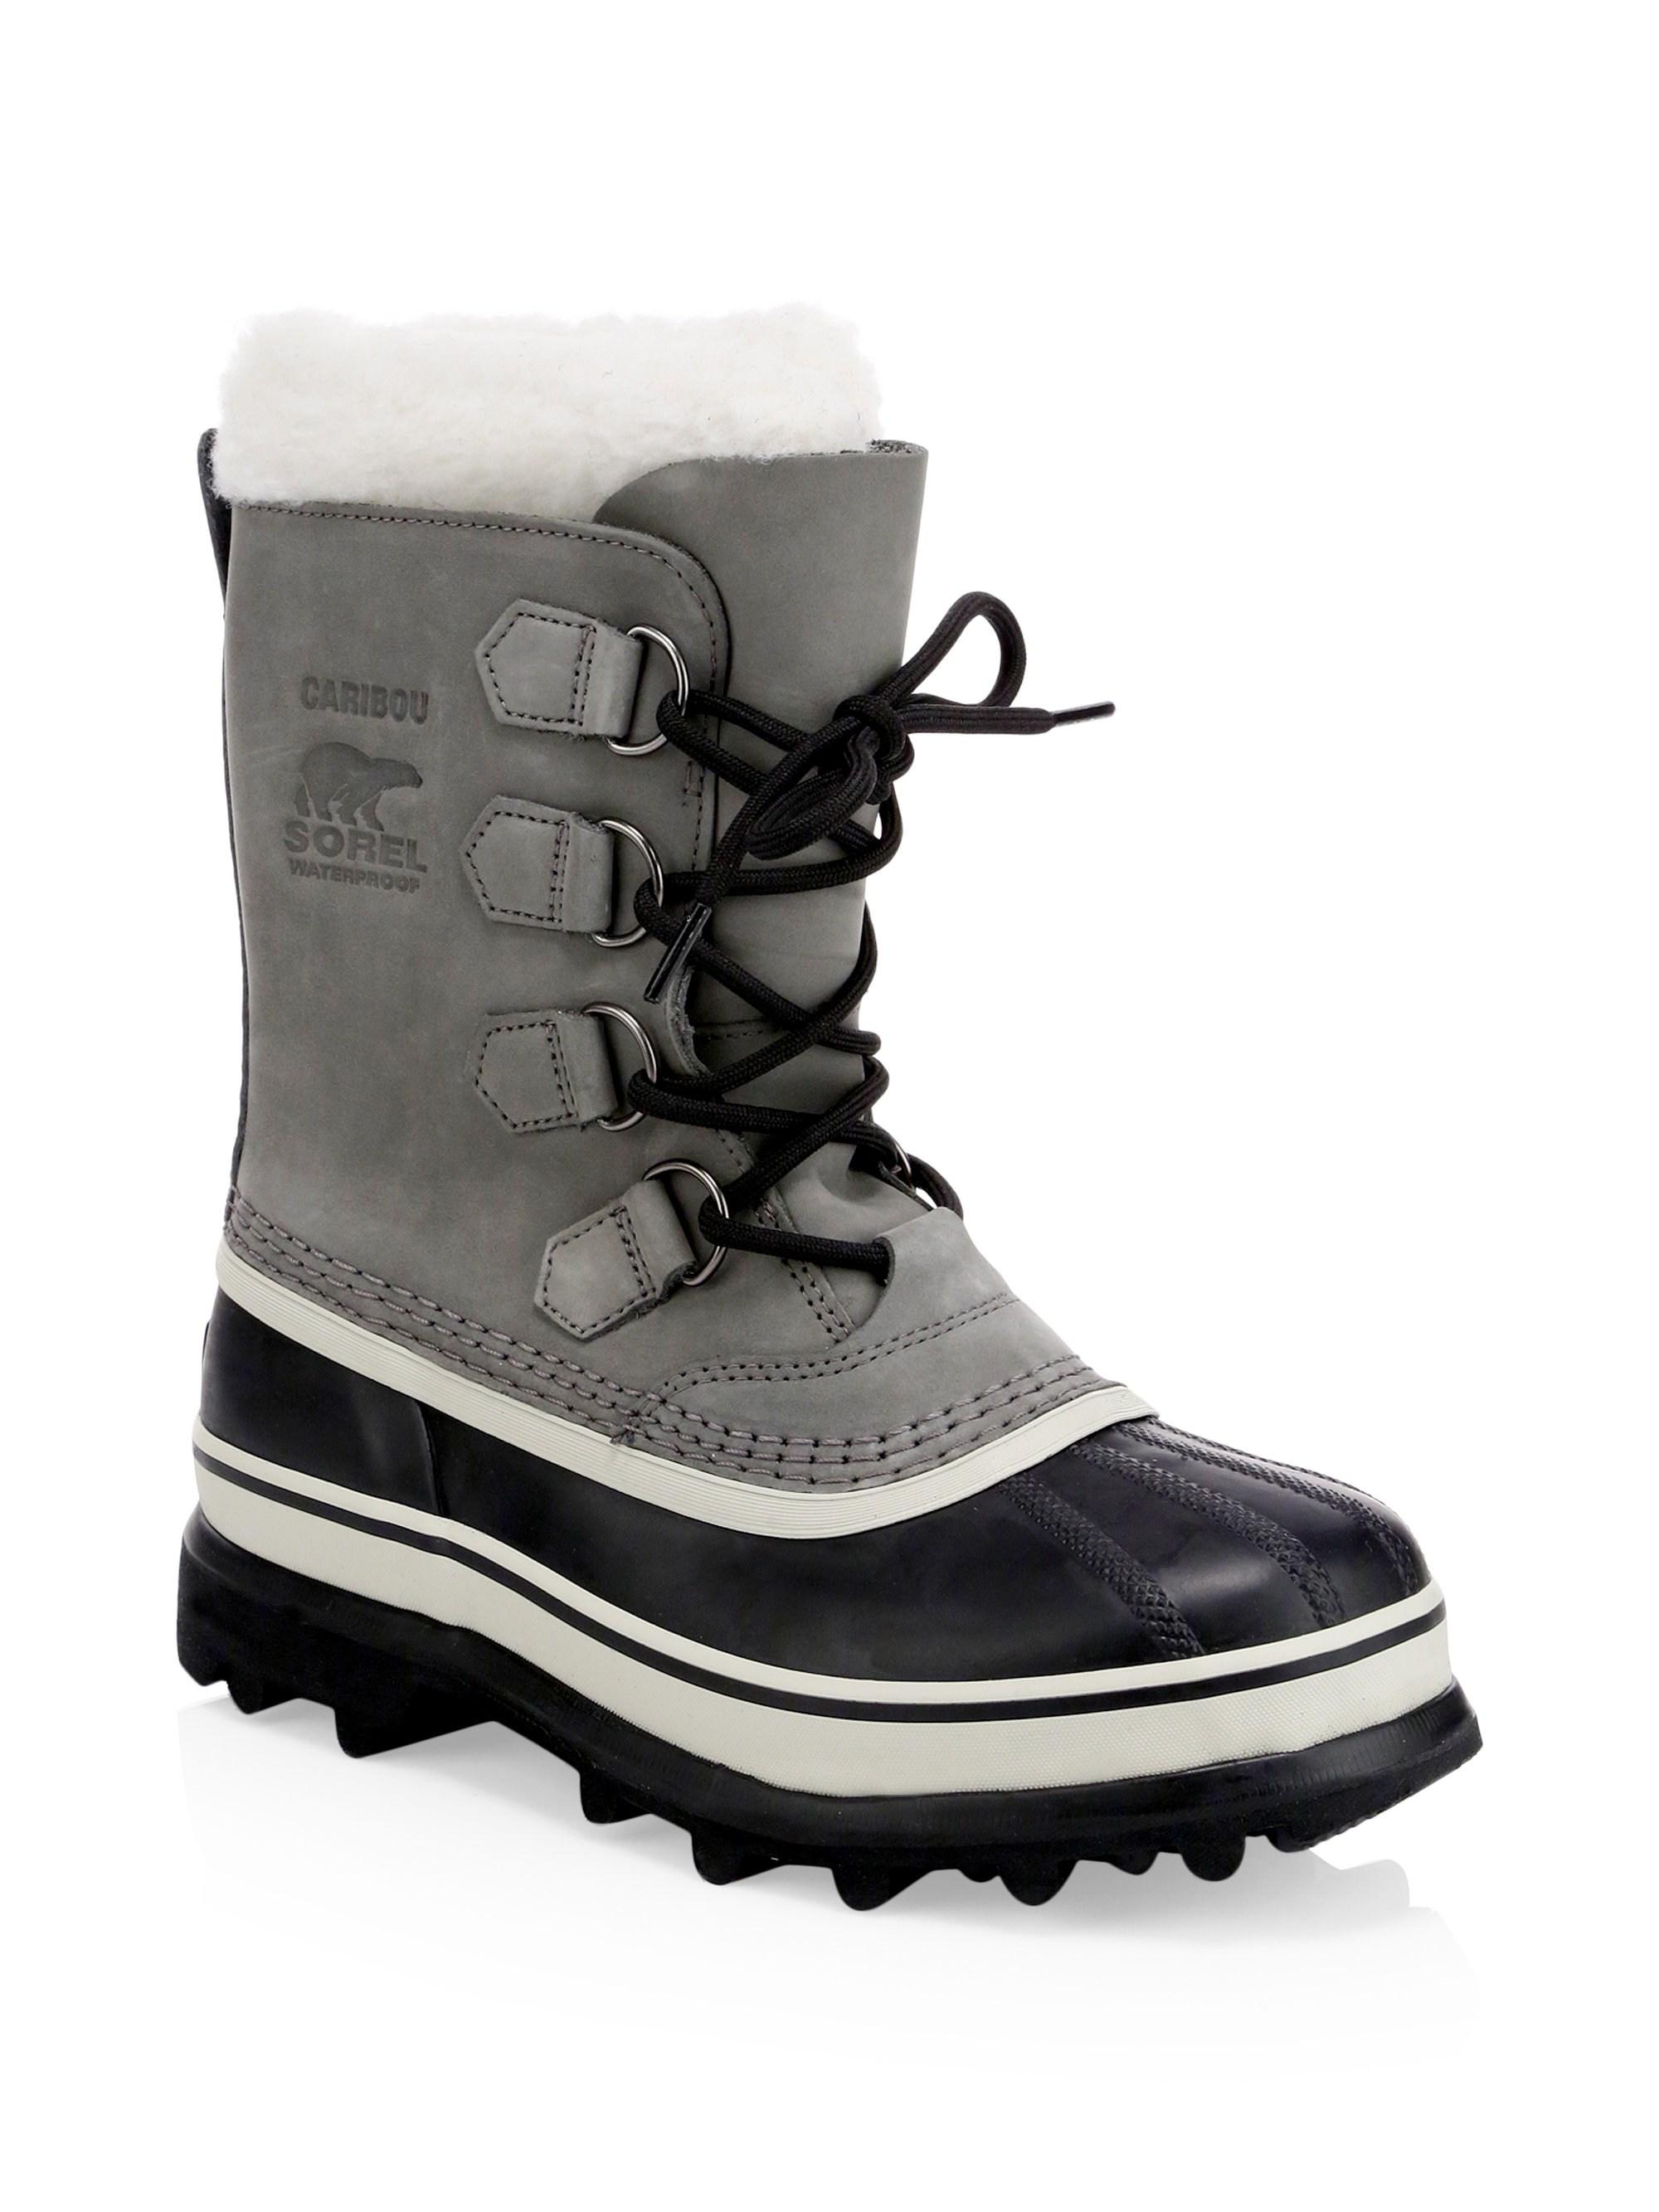 598ae47a232 Lyst - Sorel Women's Caribou Leather & Faux Fur Lace-up Boots ...